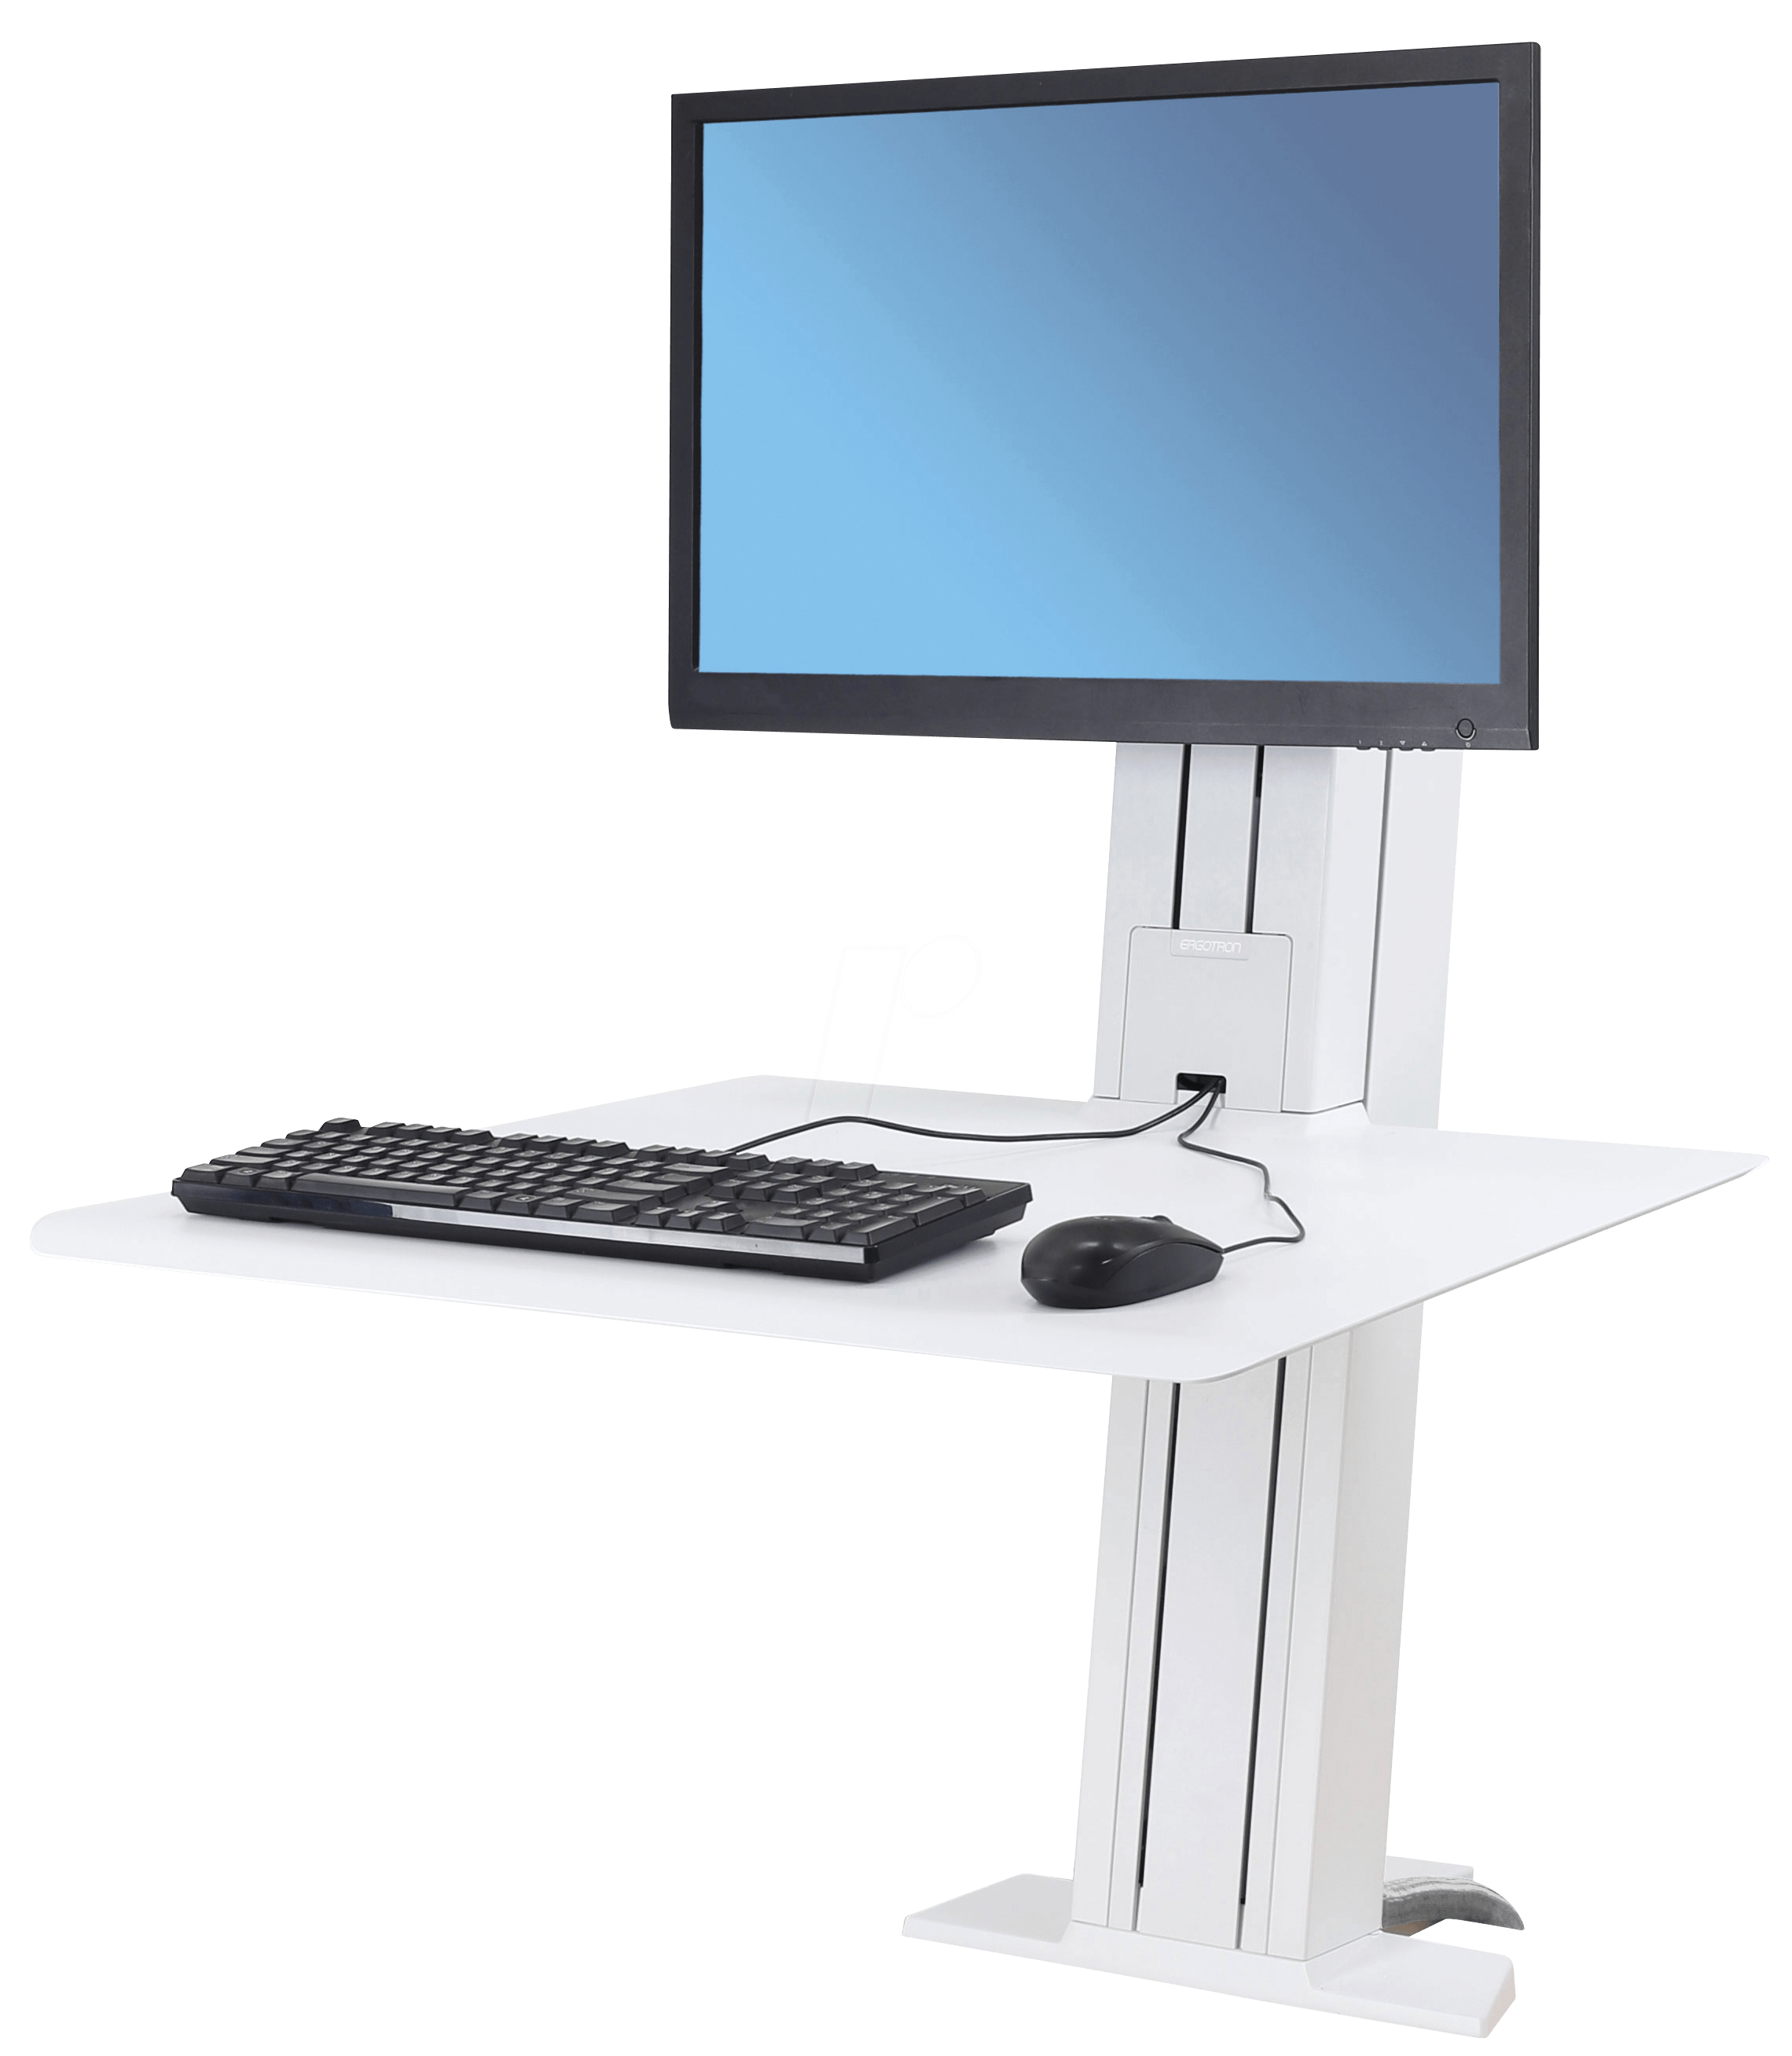 orig ergotron dual workfit standing up wworksurface desk inuse moksedesign hd manual photos stand standingesk monitor workstation